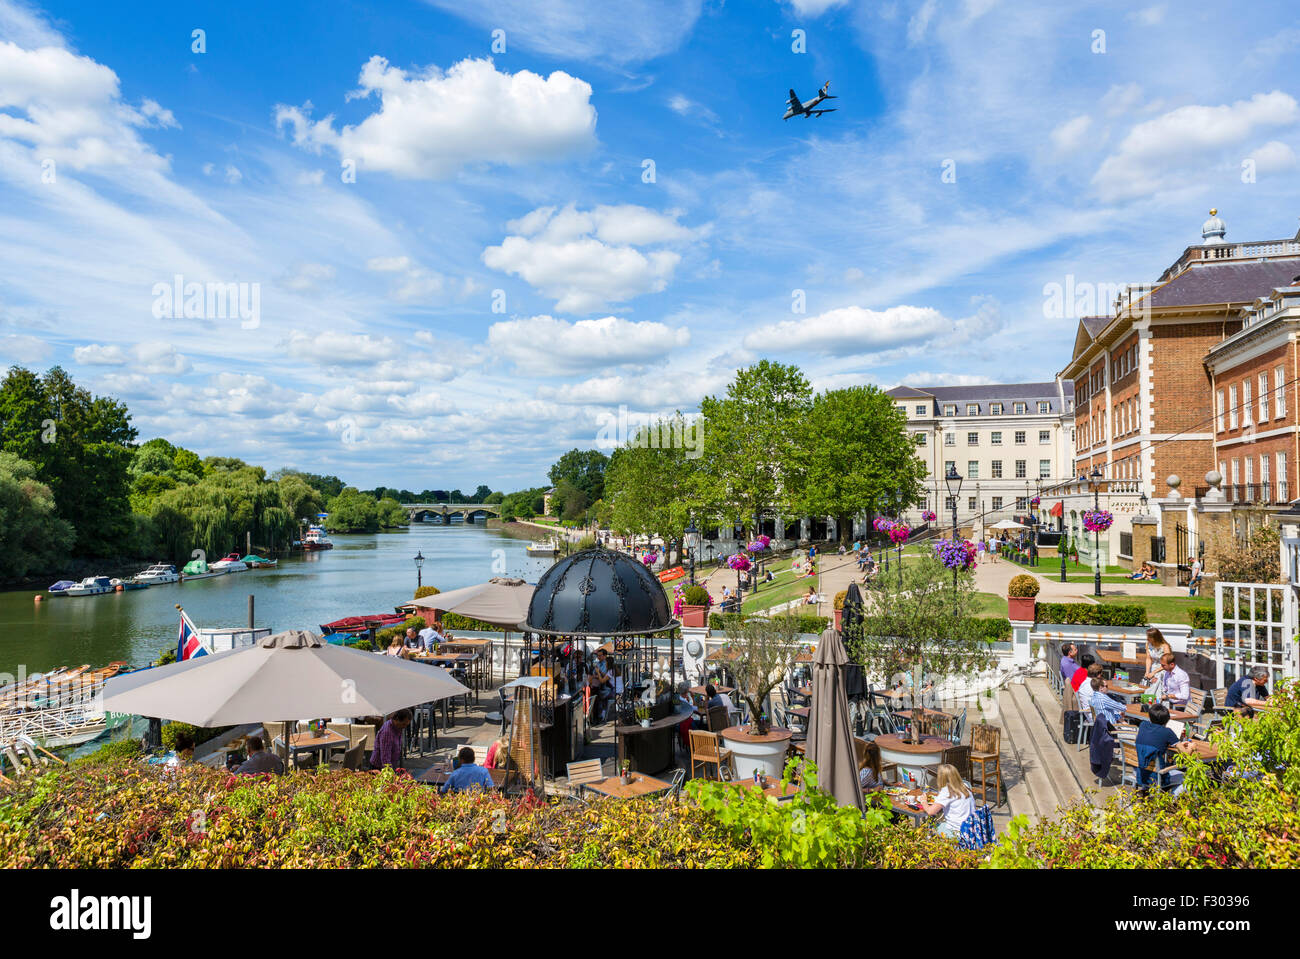 Pitcher and Piano bar terrace overlooking the River Thames, Richmond upon Thames, London, England, UK - Stock Image